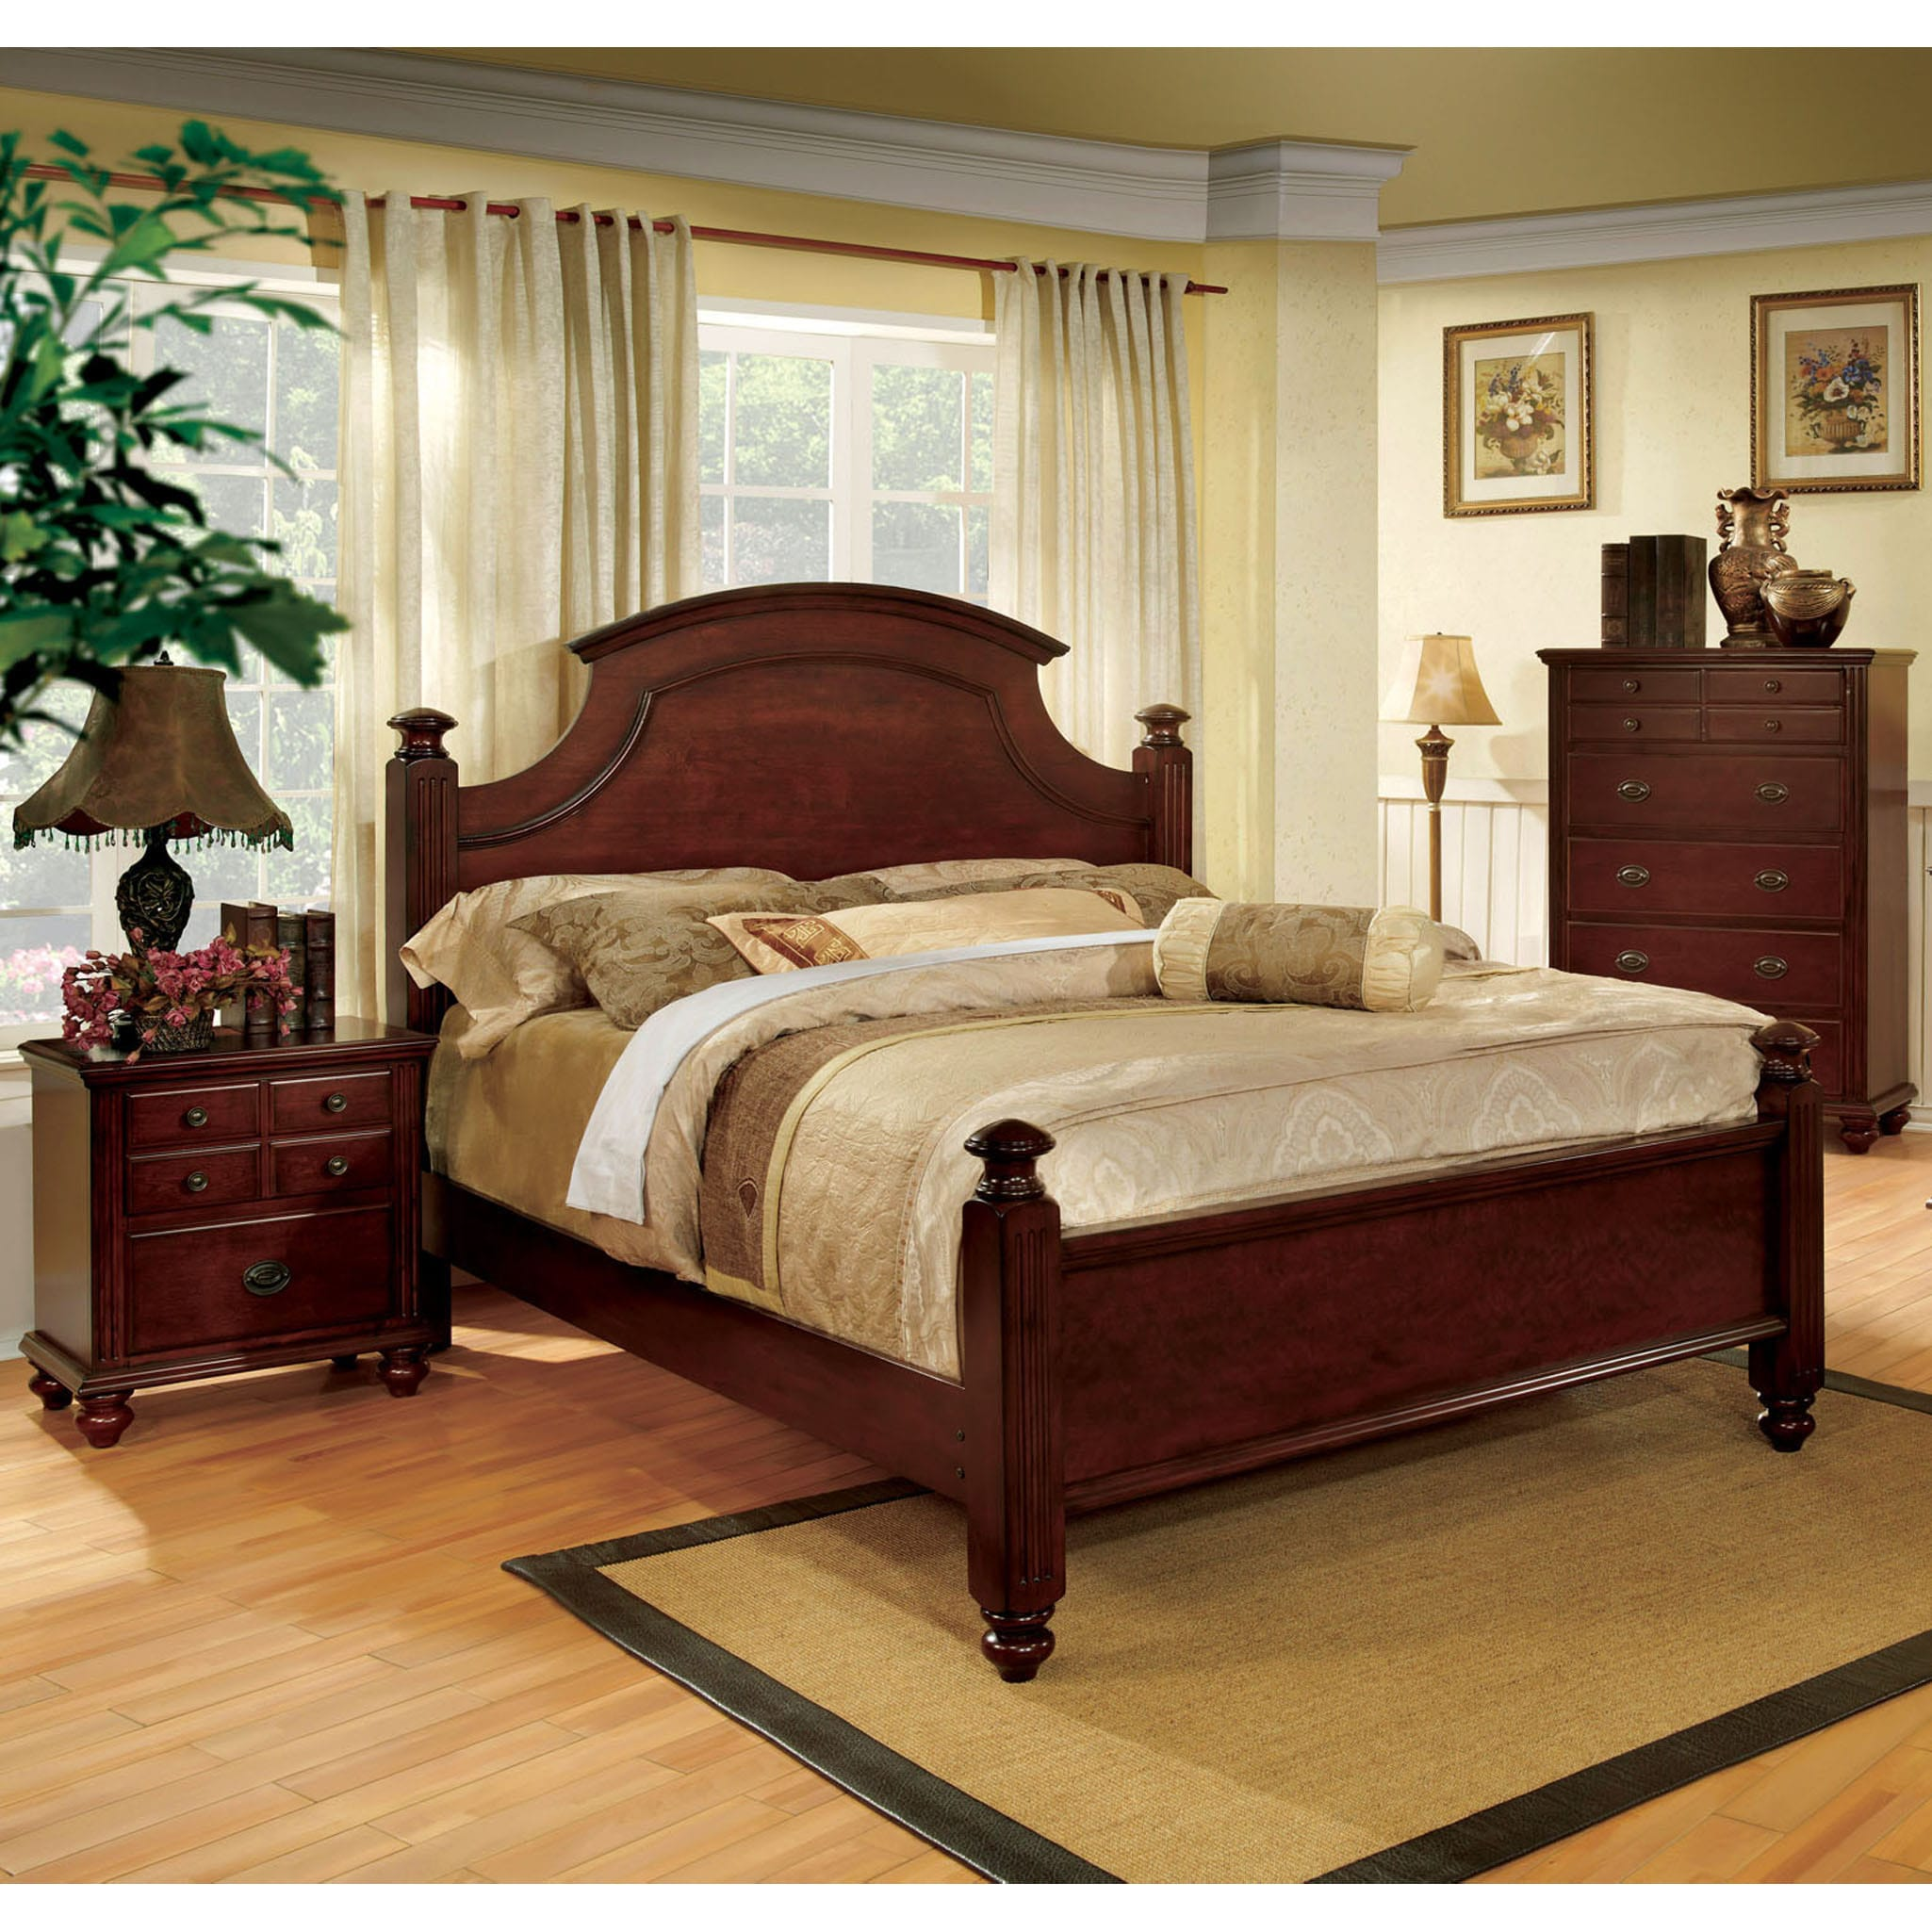 Shop furniture of america european style cherry four poster bed on sale free shipping today overstock com 9237360